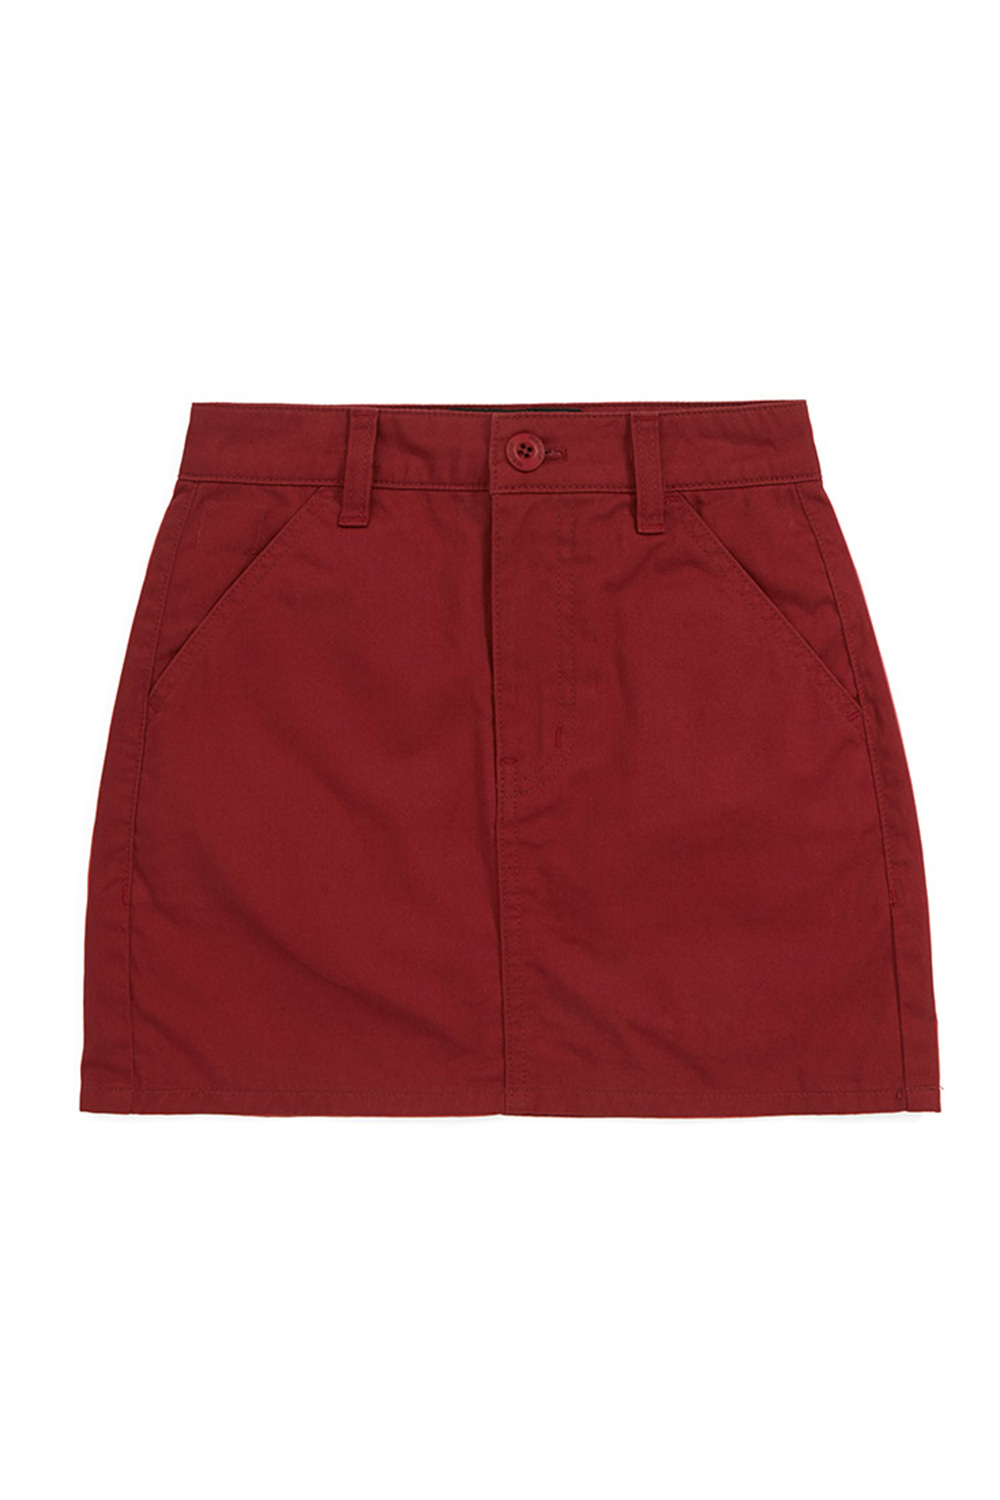 CHINO MINI SKIRT_crimson red